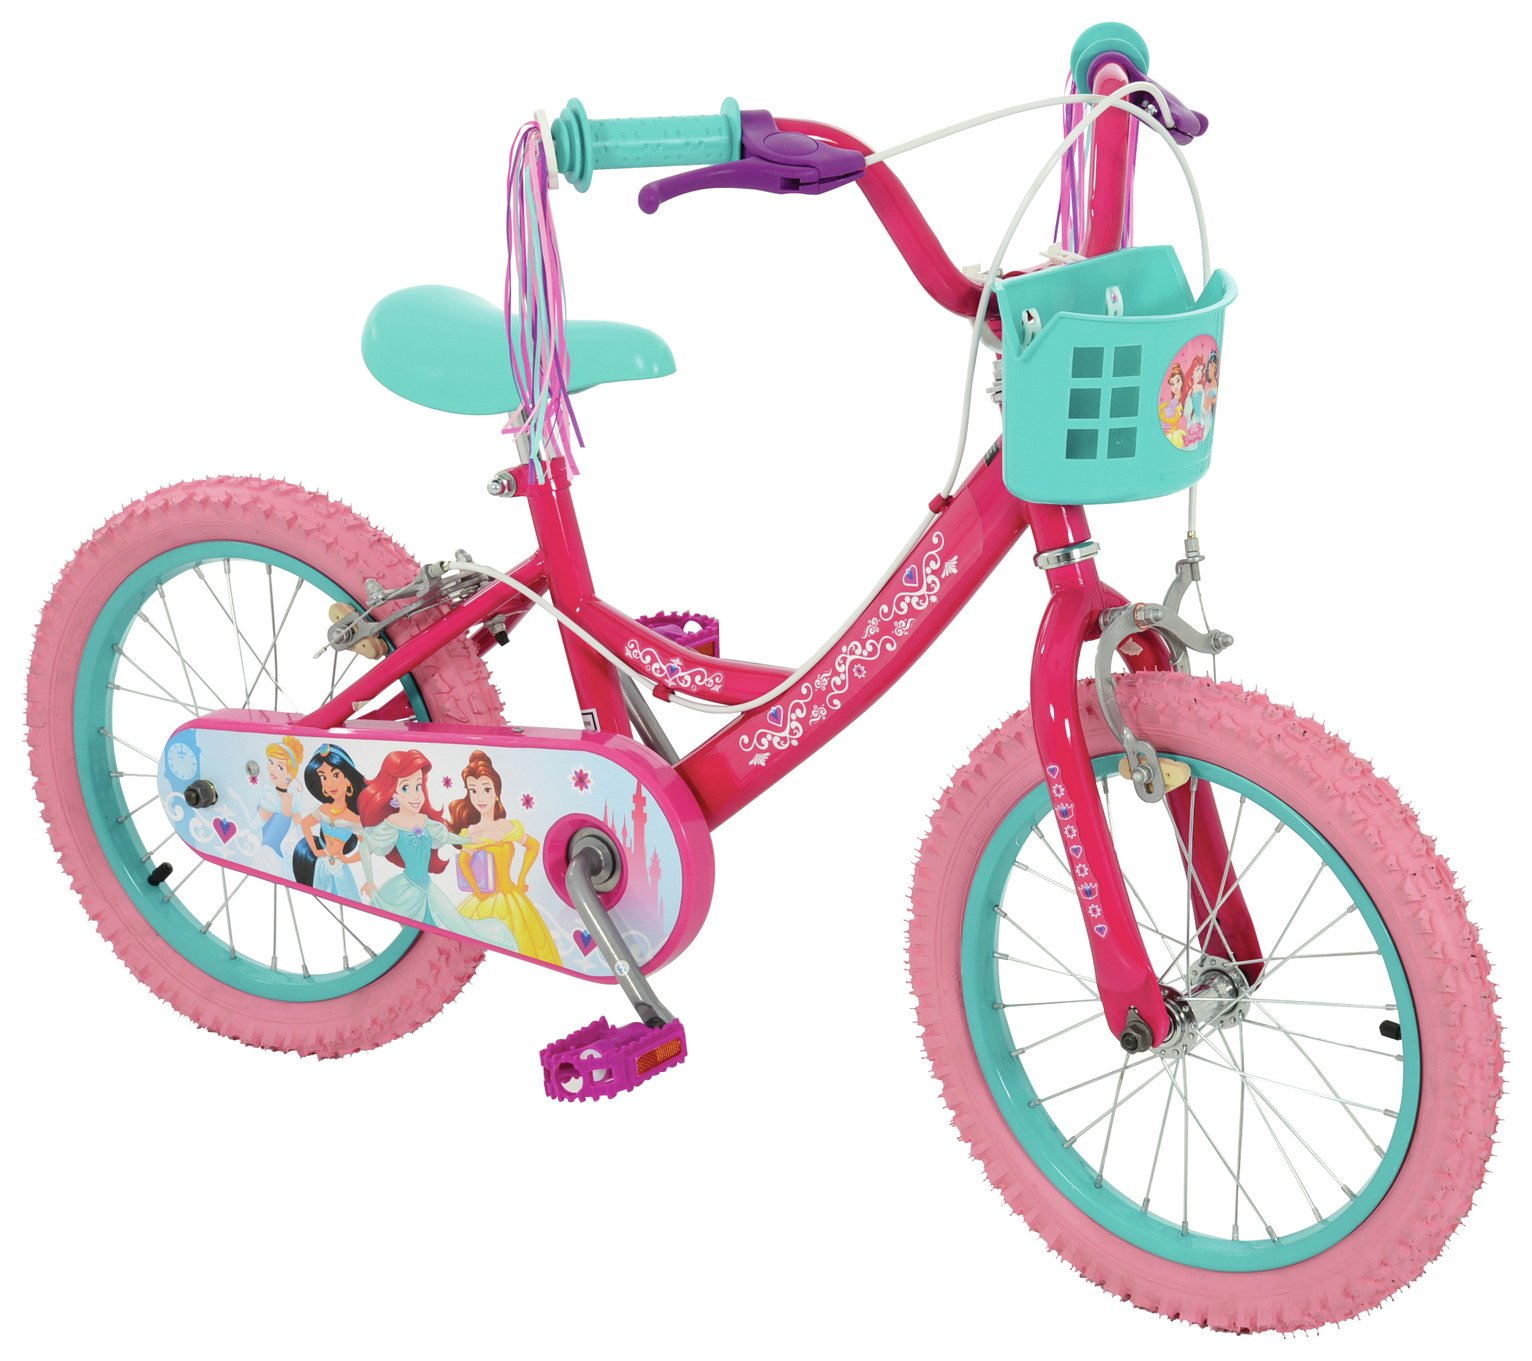 Disney Princess 16 Inch Kids Bike - Pink